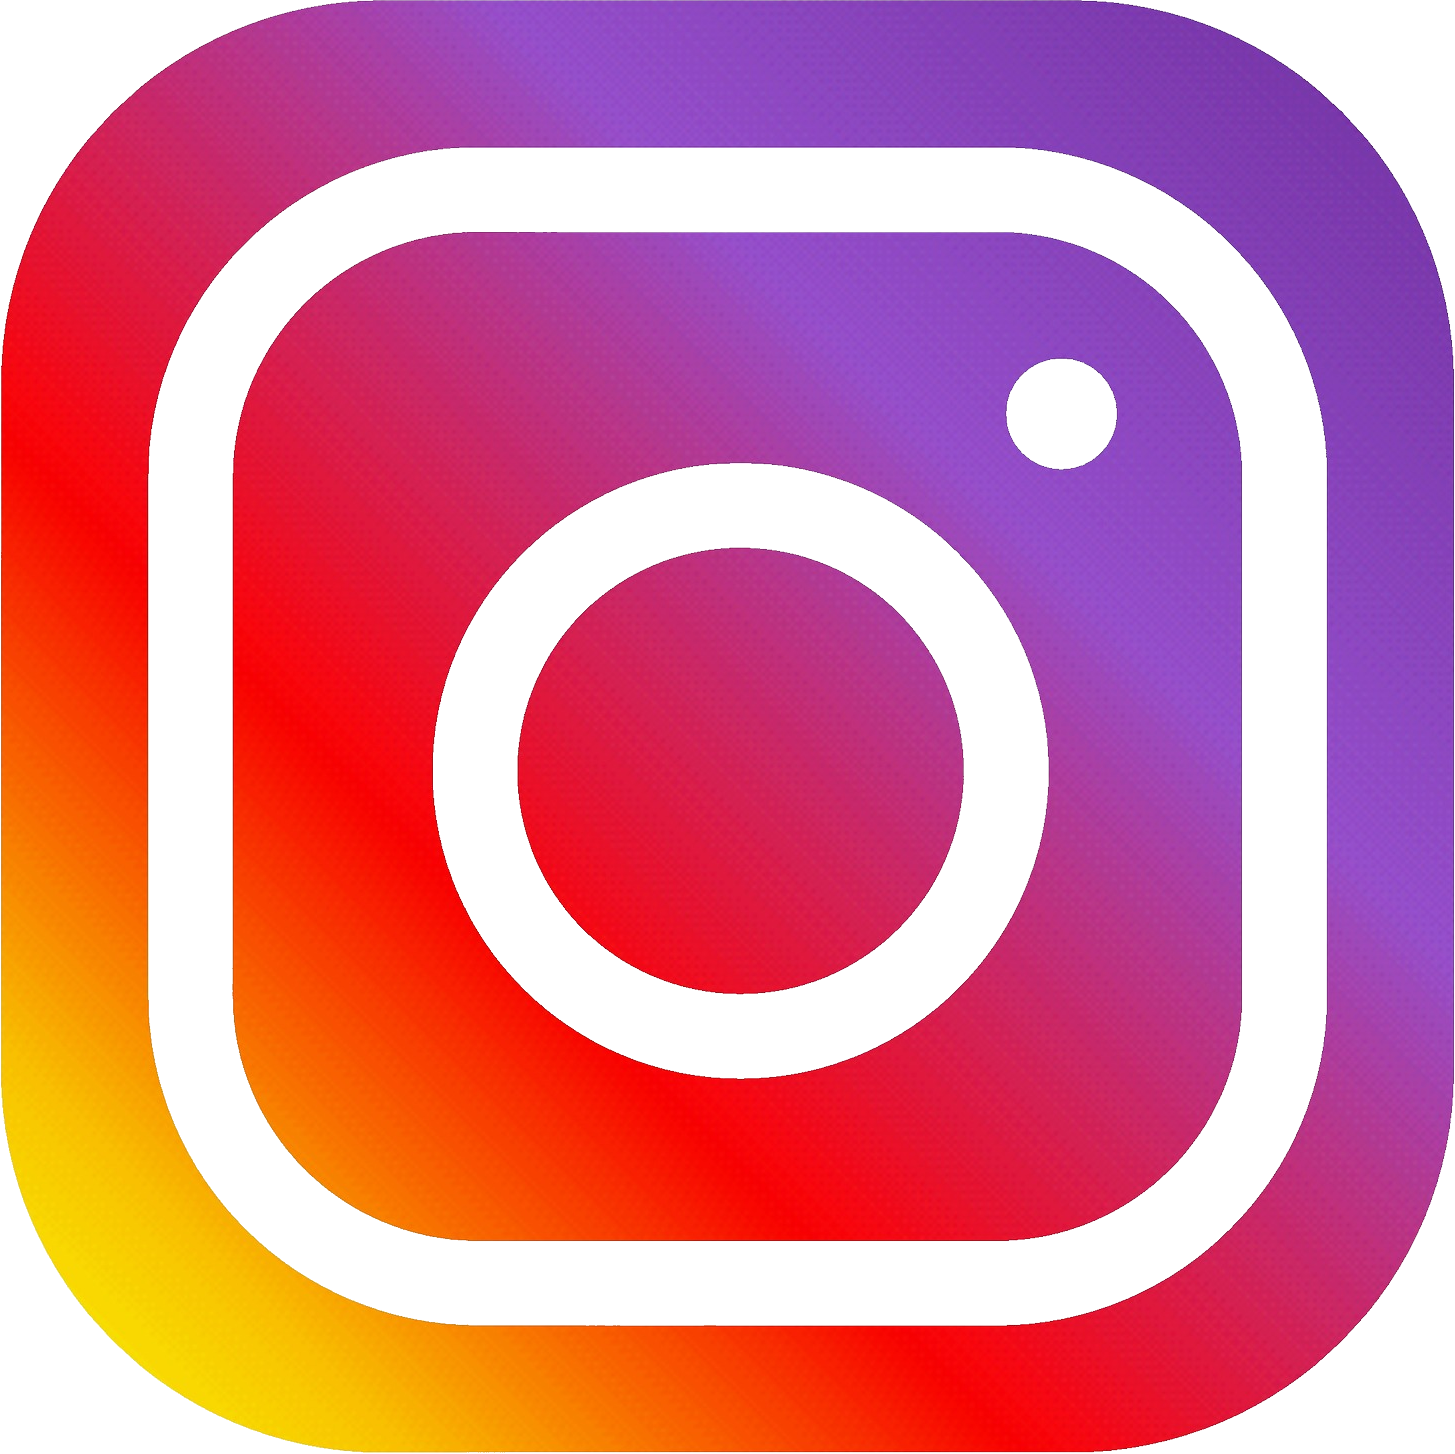 Click here to visit the Cuckfield instagram page